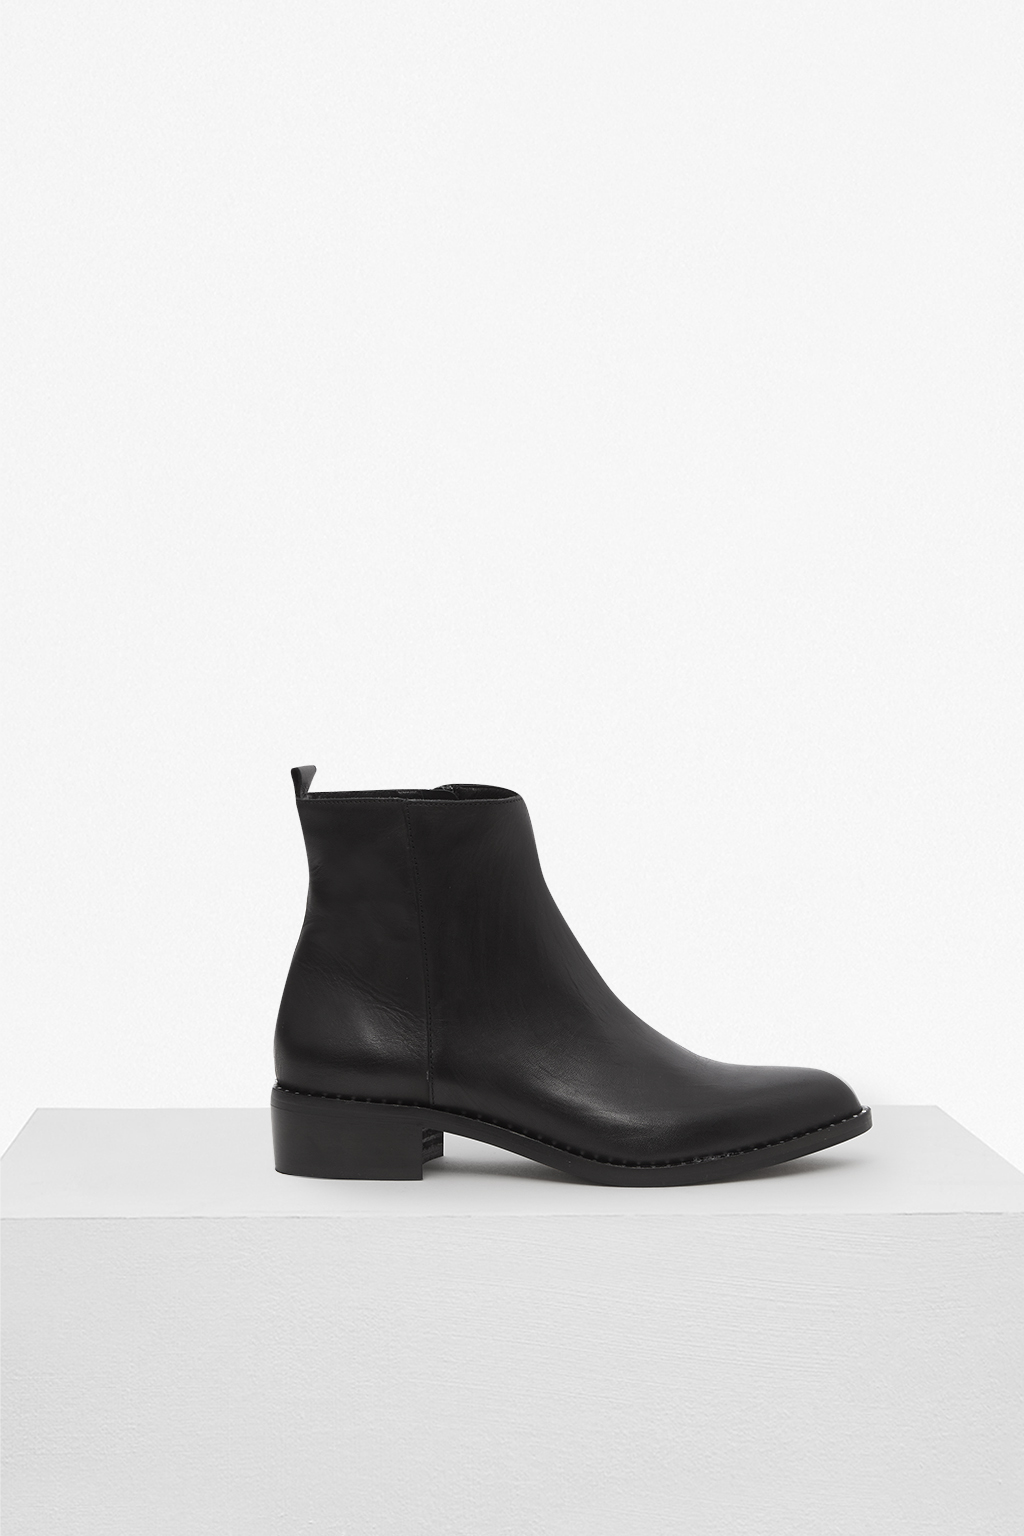 Top Brands Women French Connection Molly Boot Black - K7L751653